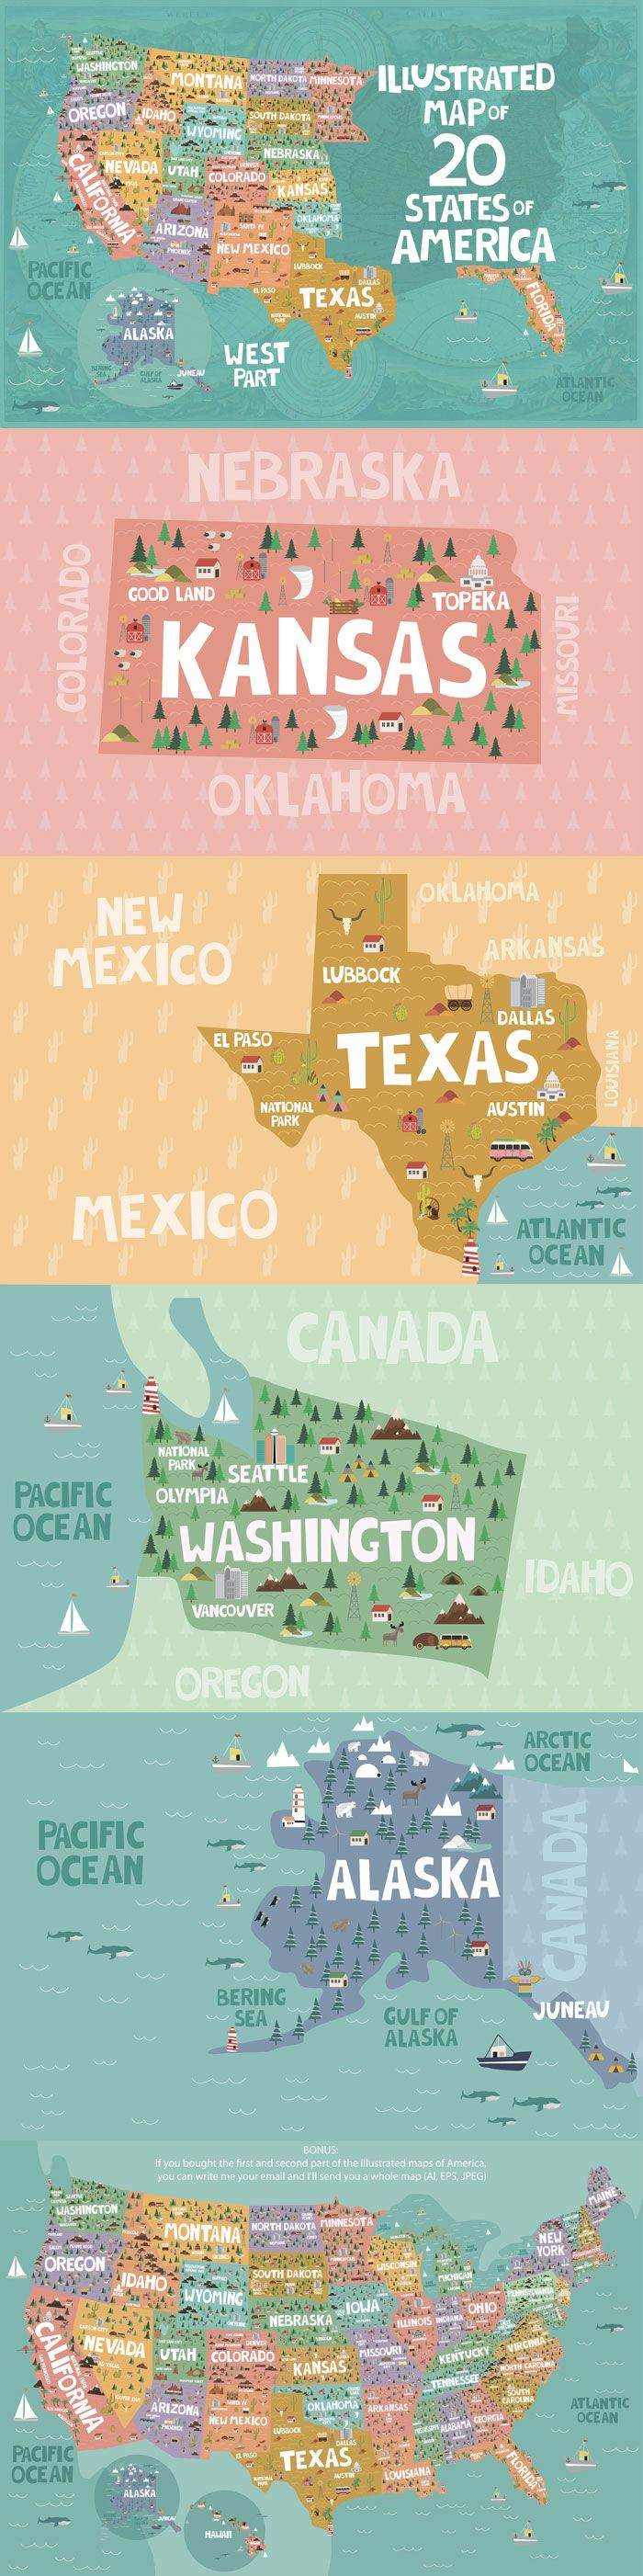 20 States Of America Illustrated Map Vector Designs Inspiration